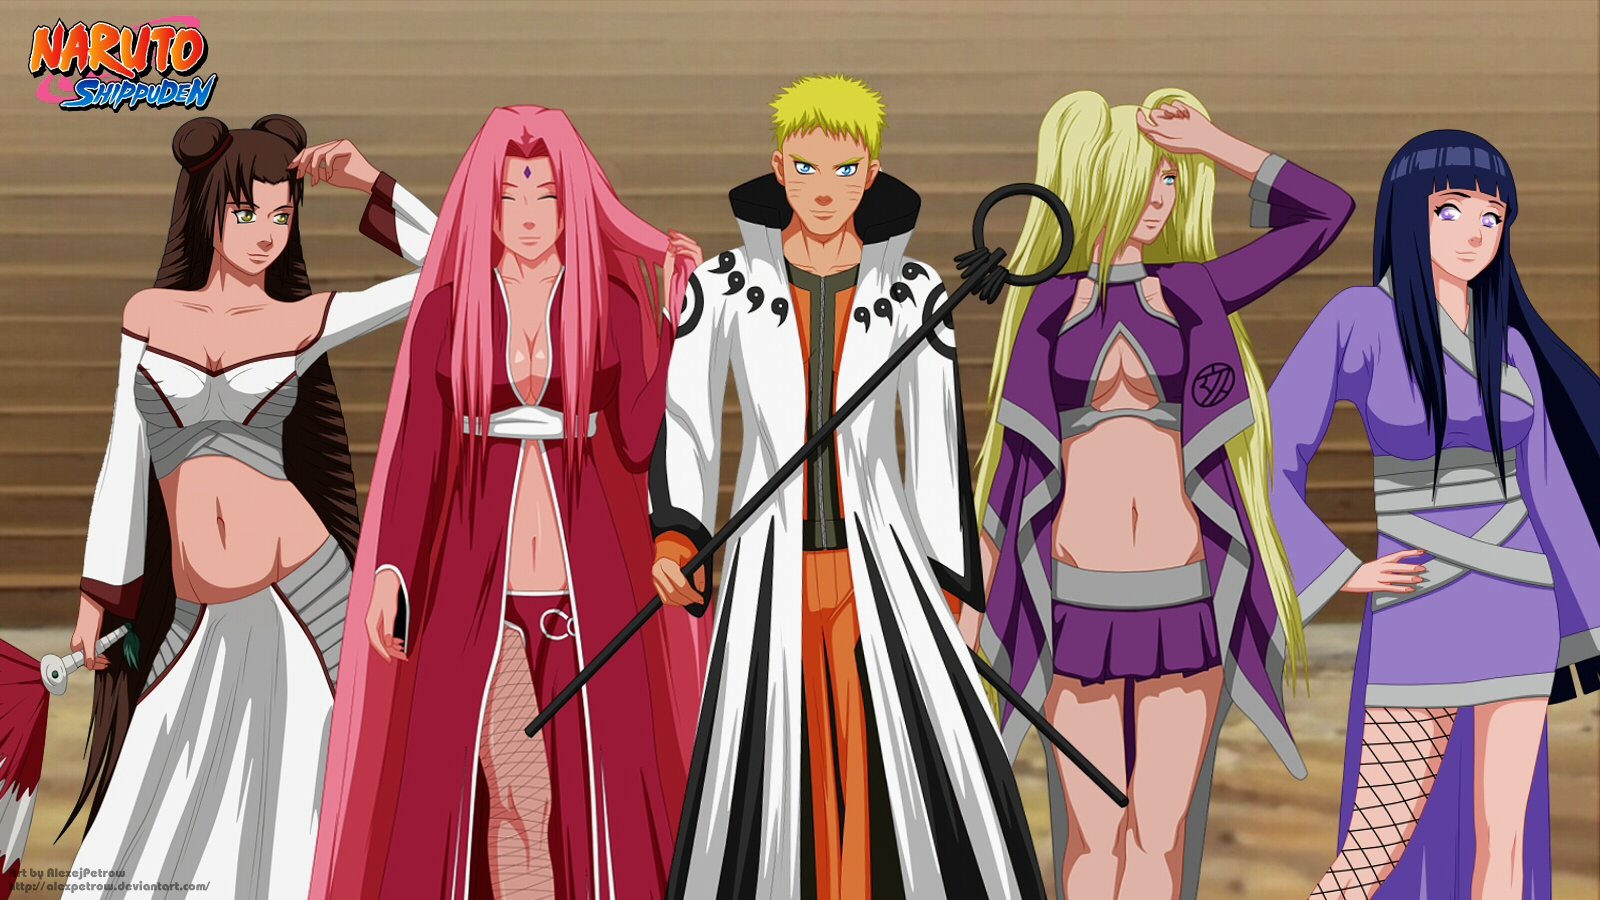 Naruto and Girls by AlexPetrow on DeviantArt